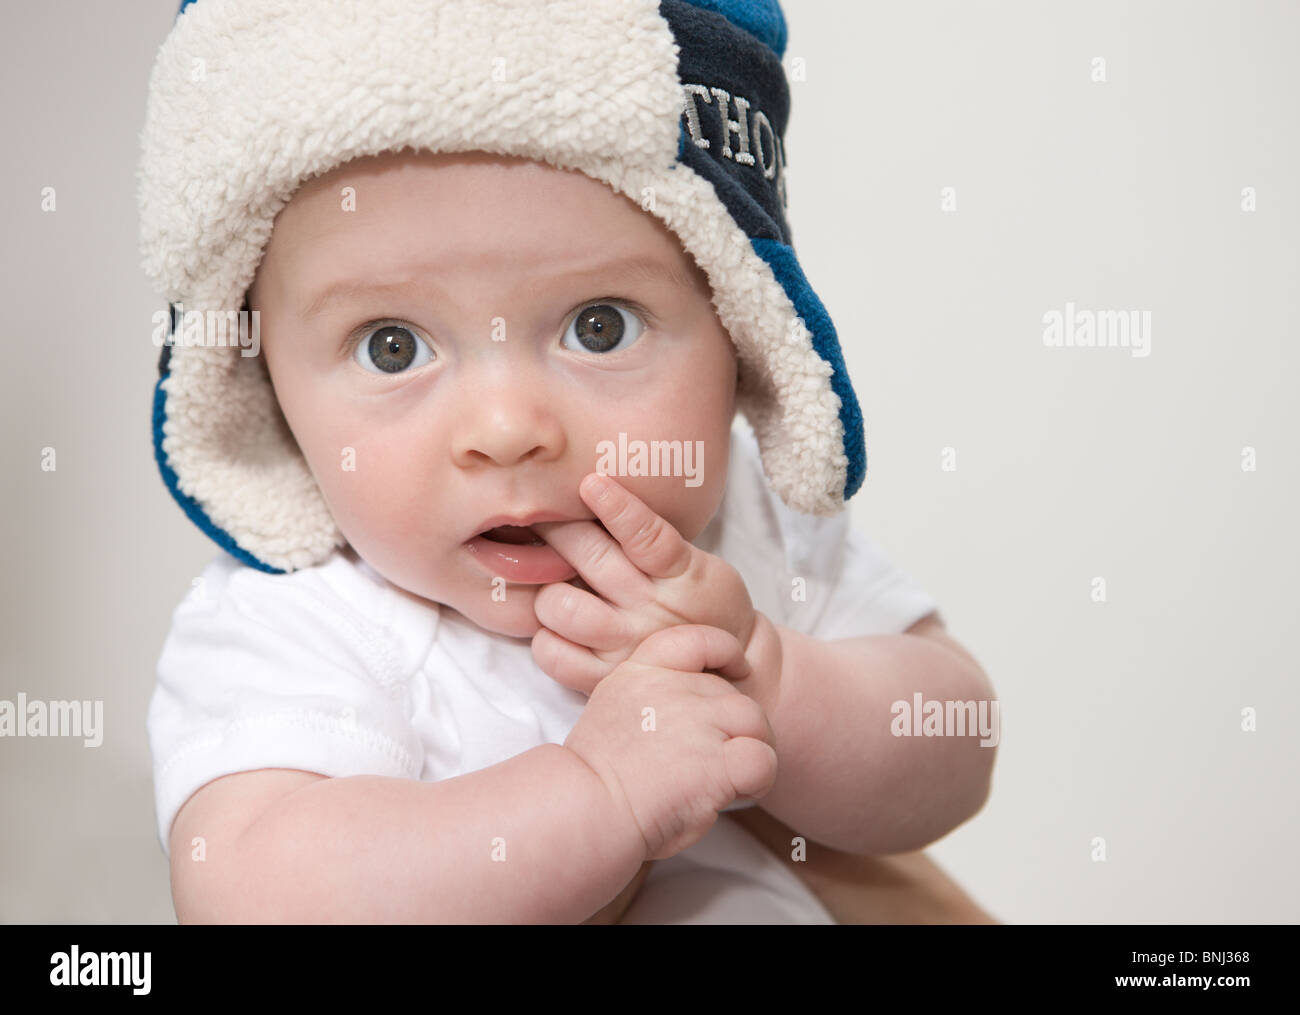 Beautiful 4 month old baby wearing hat with a curious expression ... d2fa3a46fc6